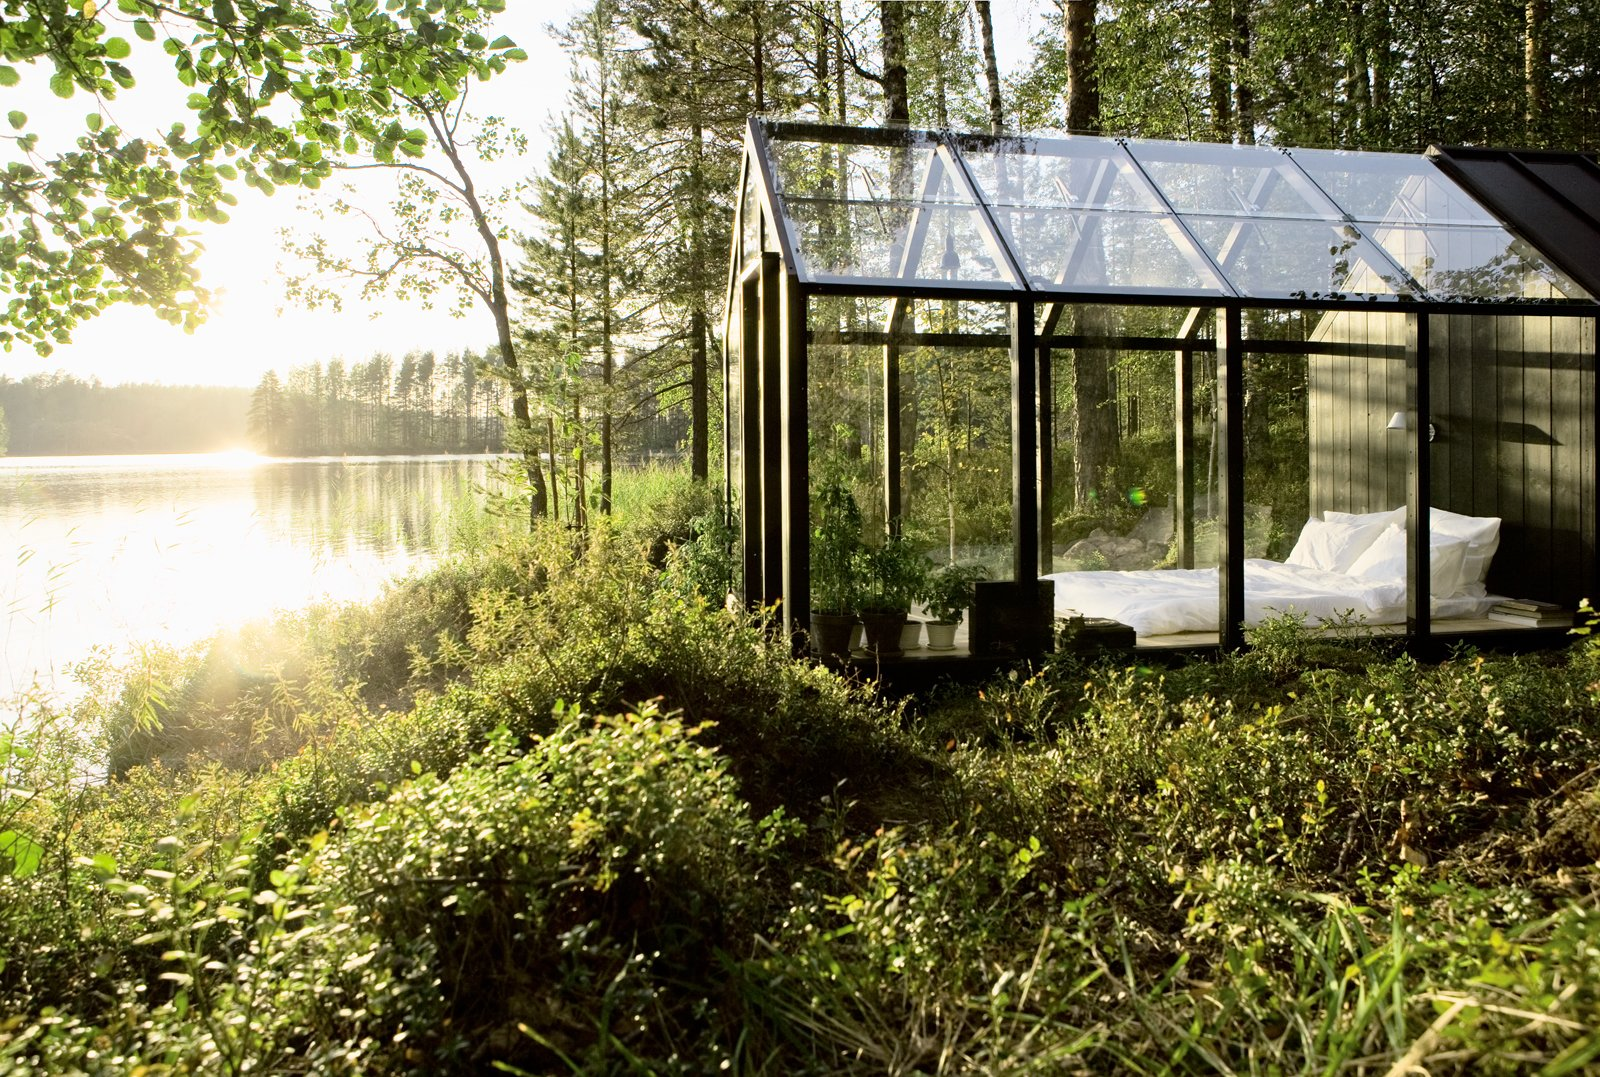 Helsinki architect Ville Hara and designer Linda Bergroth collaborated on this prefab shed-meets-sleeping-cabin, which can be assembled with little else than a screwdriver. Bergroth, inspired by nomadic yurt-dwellers, wanted an indoor/outdoor experience for her property in Finland.  Sourcing Guide for Modern Prefab Companies in Europe by Kelsey Keith from Modern Prefabs in the Woods